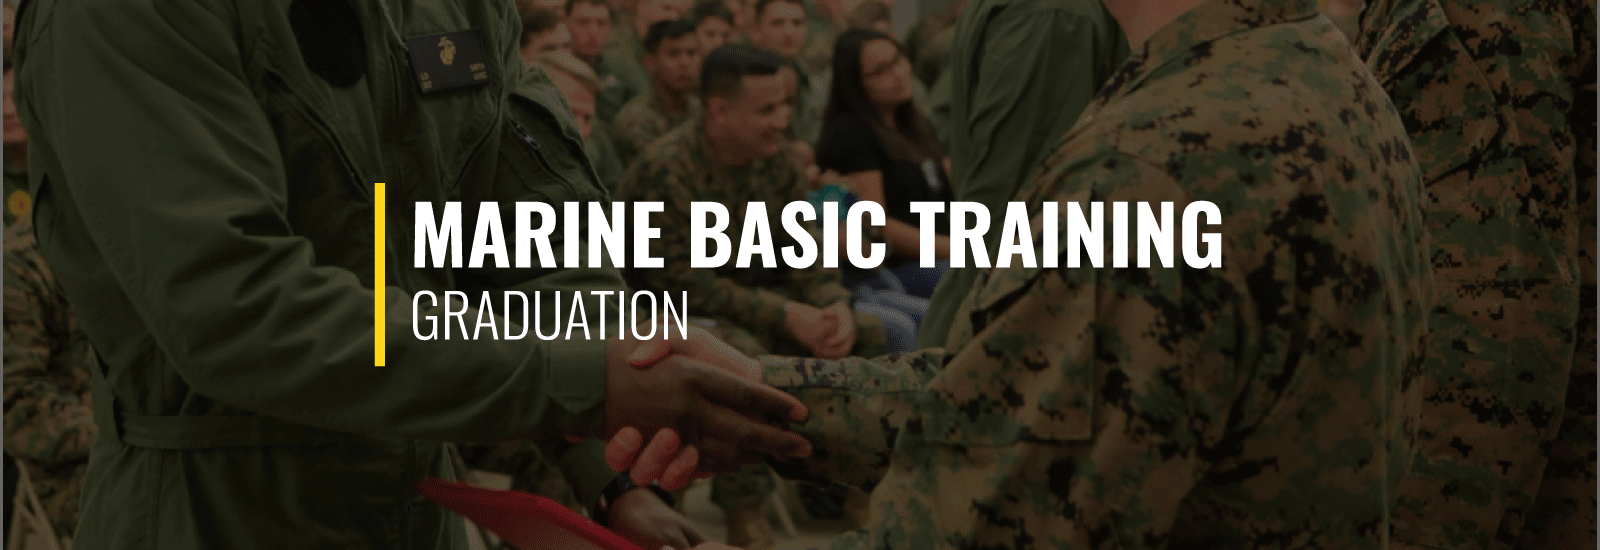 Marine Basic Training Graduation